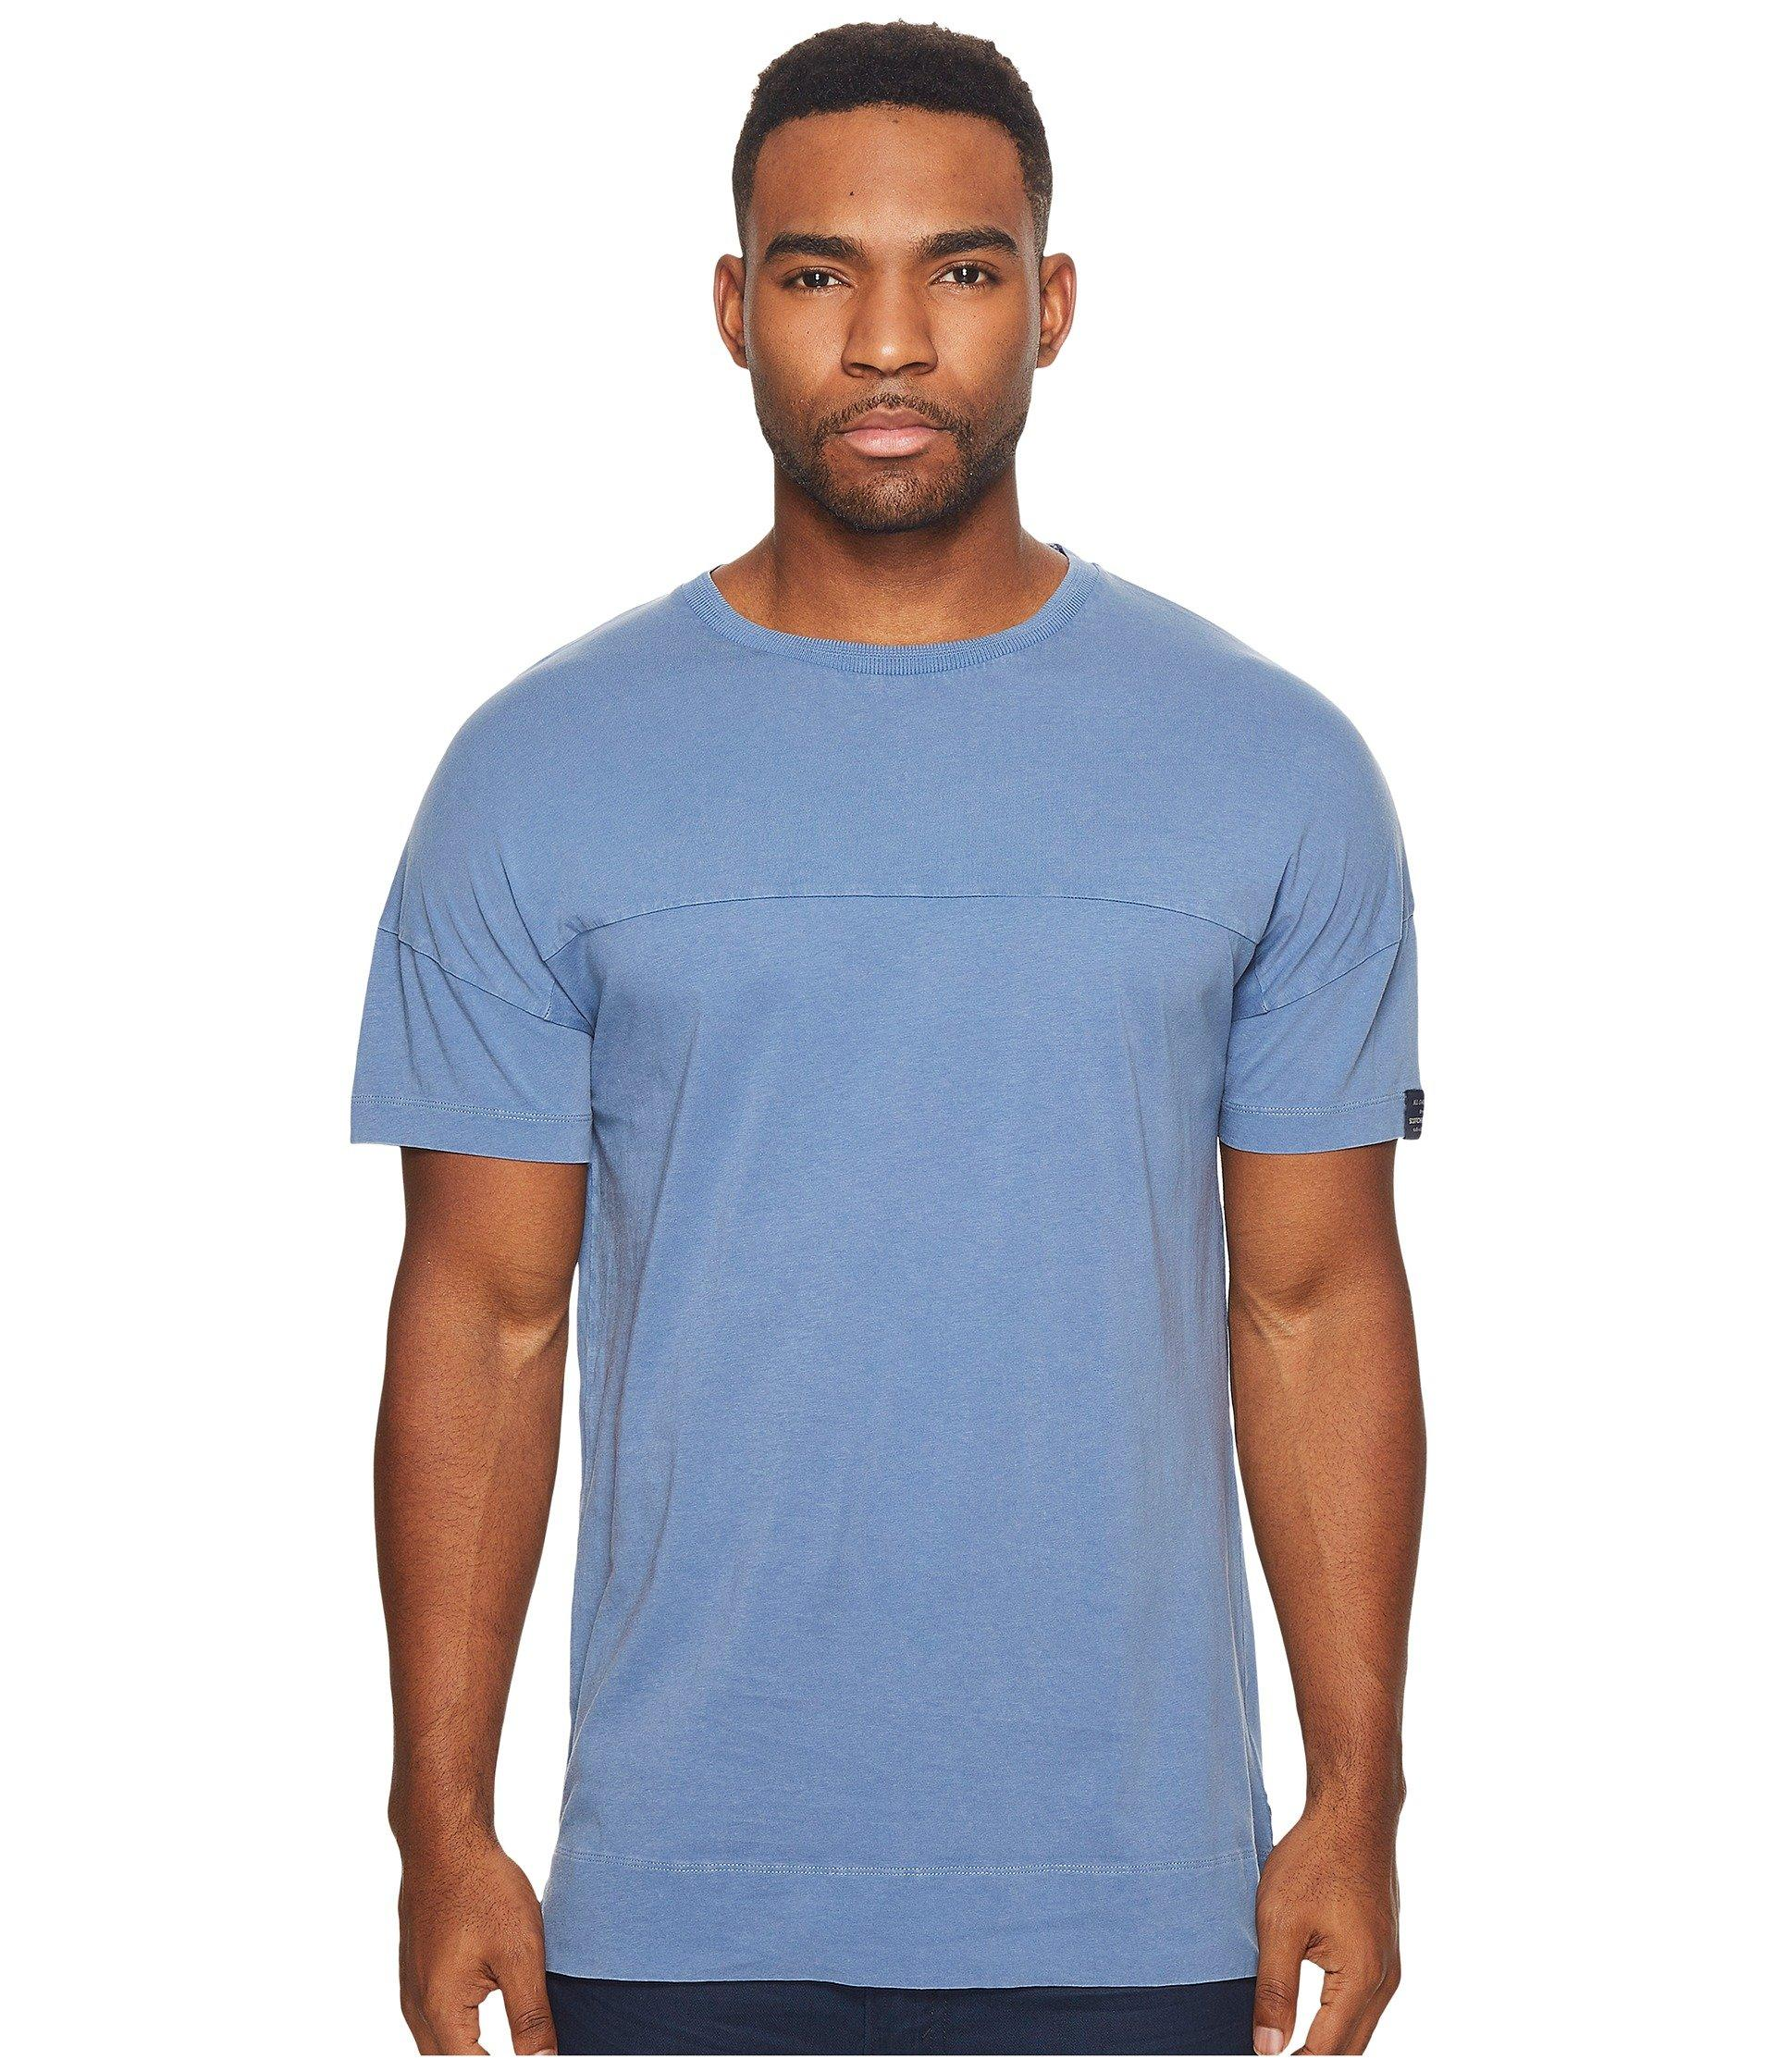 Scotch & Soda Garment Dyed Crew Neck Tee With Dropped Shoulder In Washed Indigo